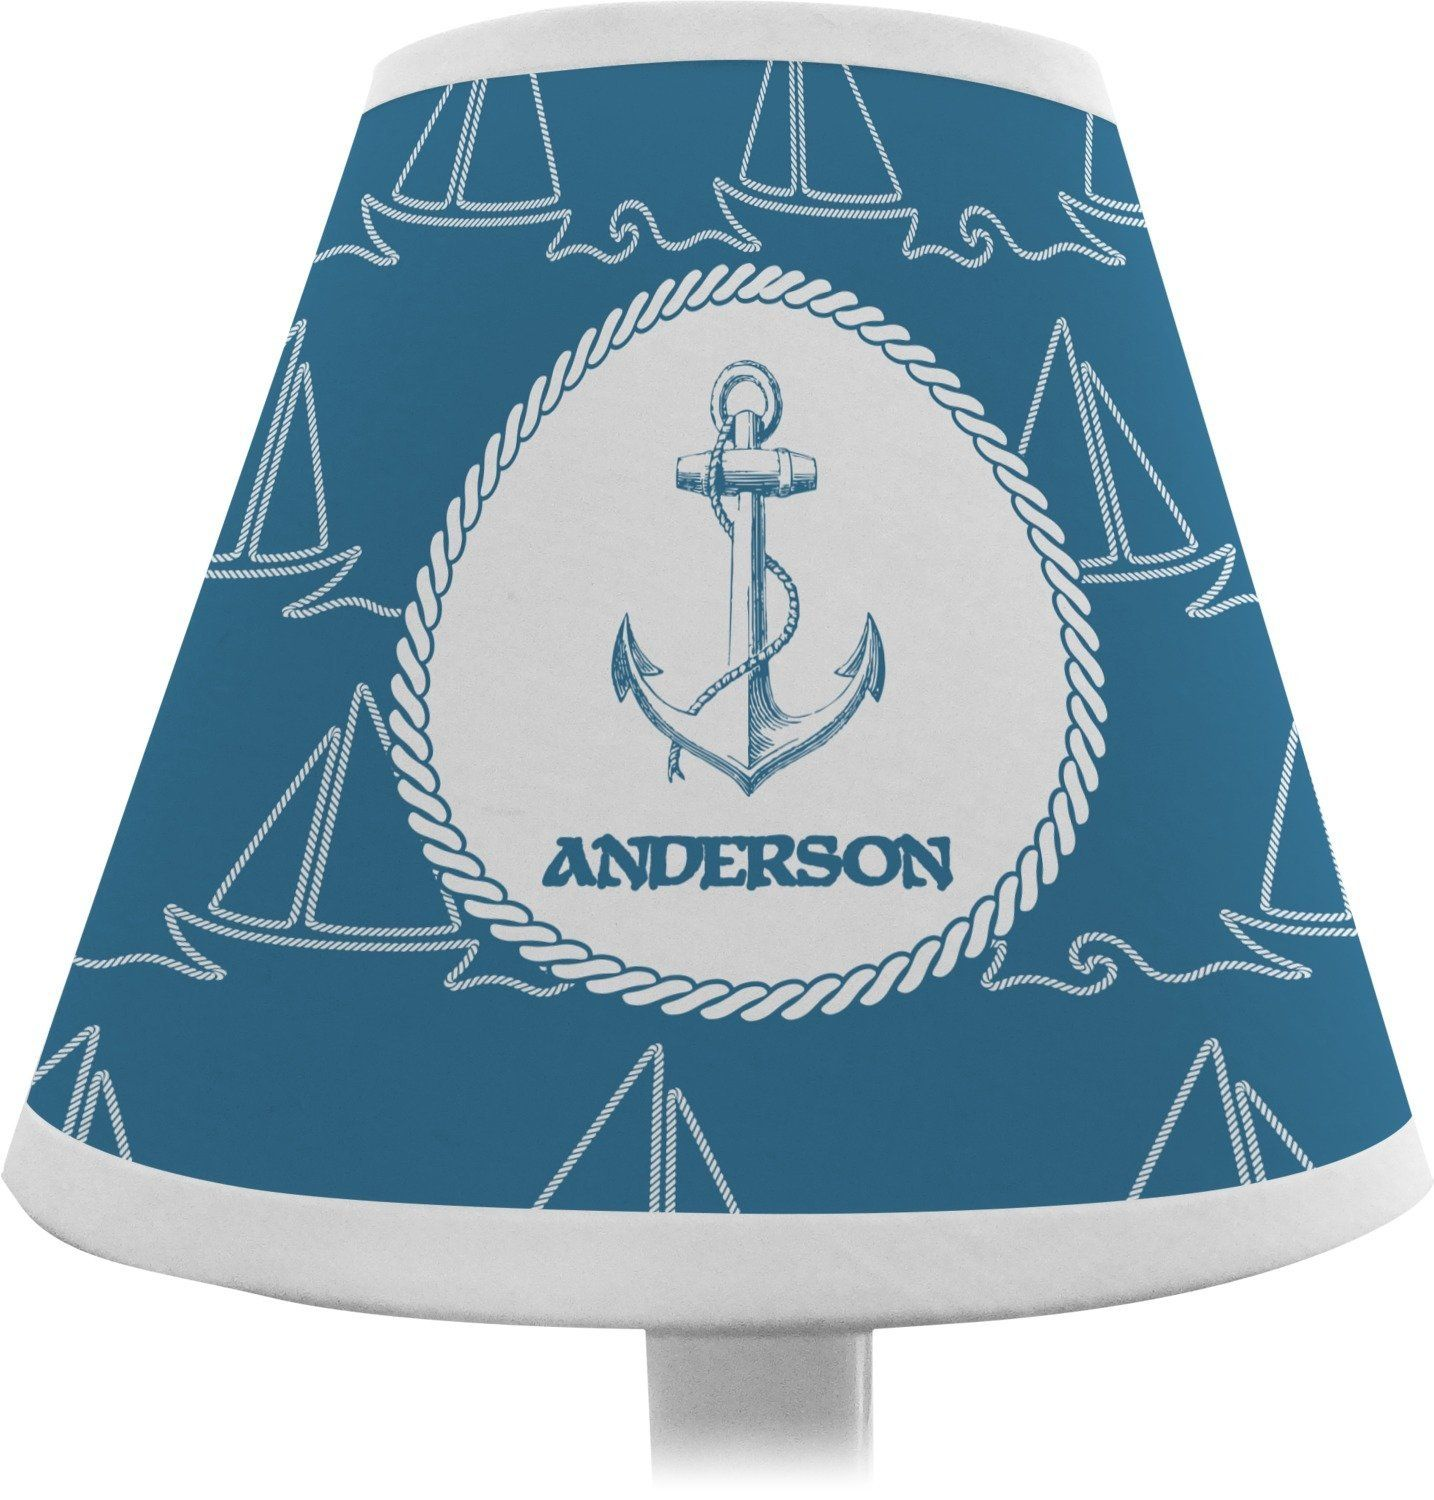 Rope sail boats chandelier lamp shade personalized special rope sail boats chandelier lamp shade personalized special offer just for mozeypictures Choice Image